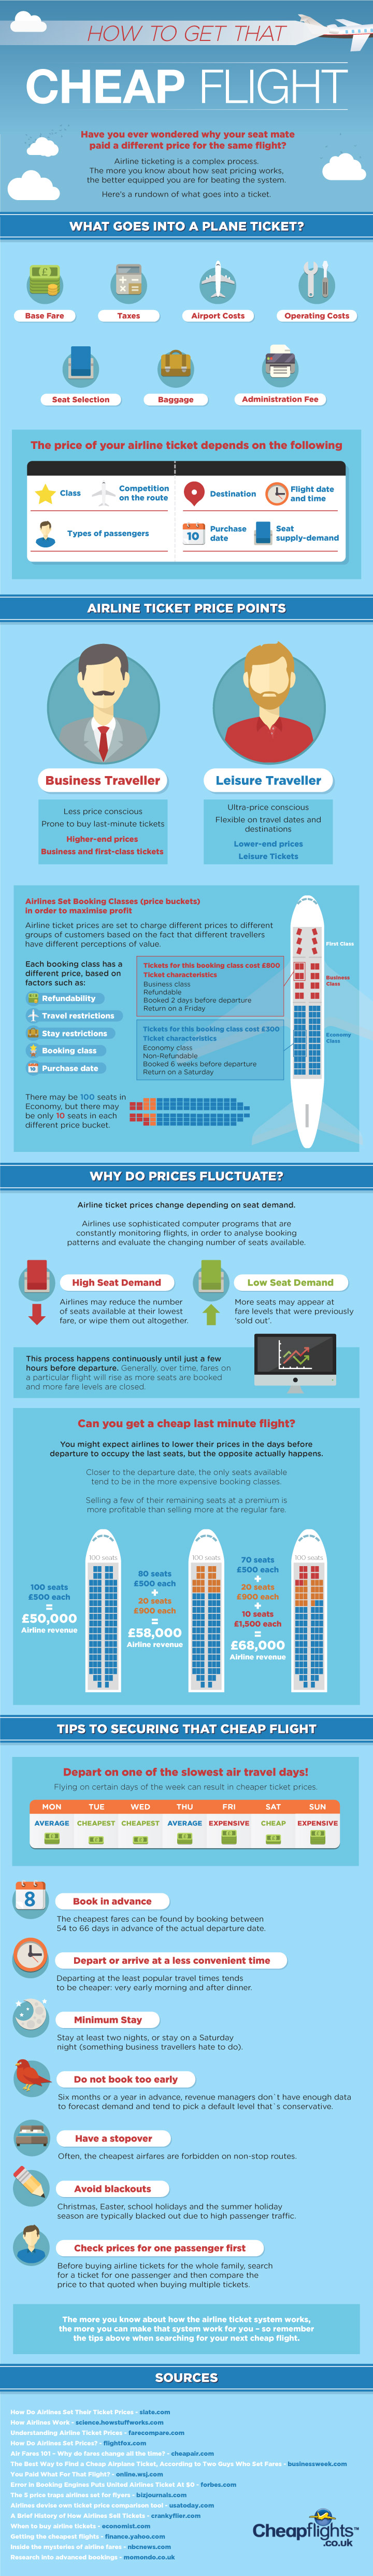 Travel tips: How to book a cheap flight [#Infographic]